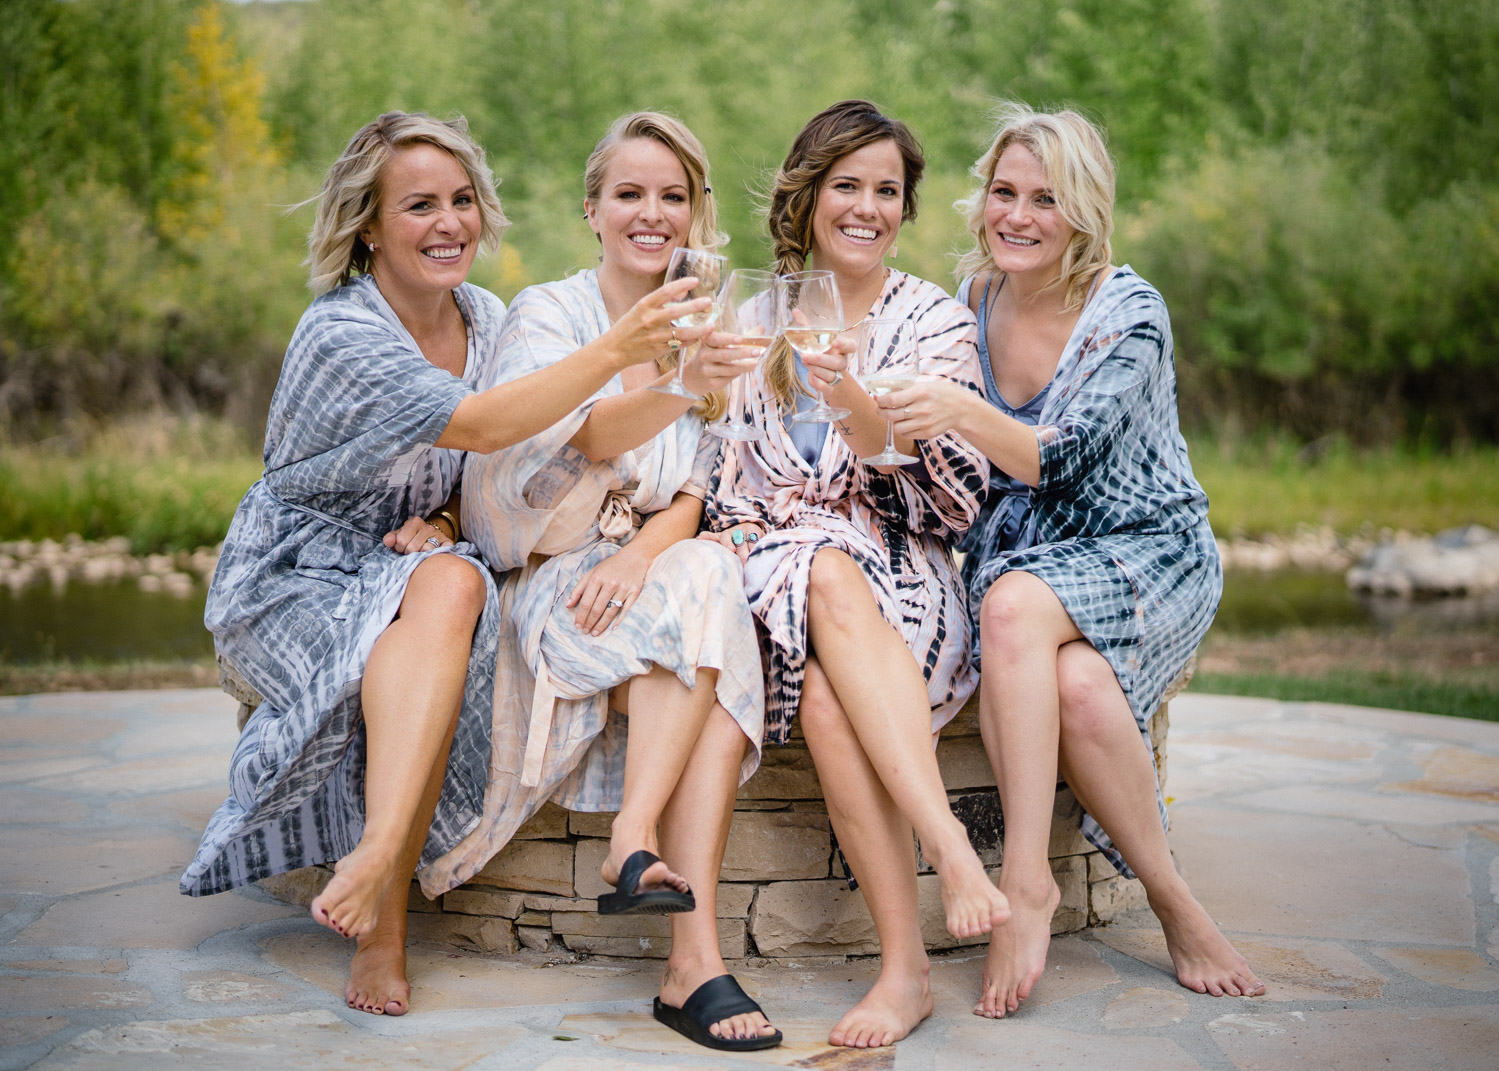 bridal party in robes with champagne park city wedding